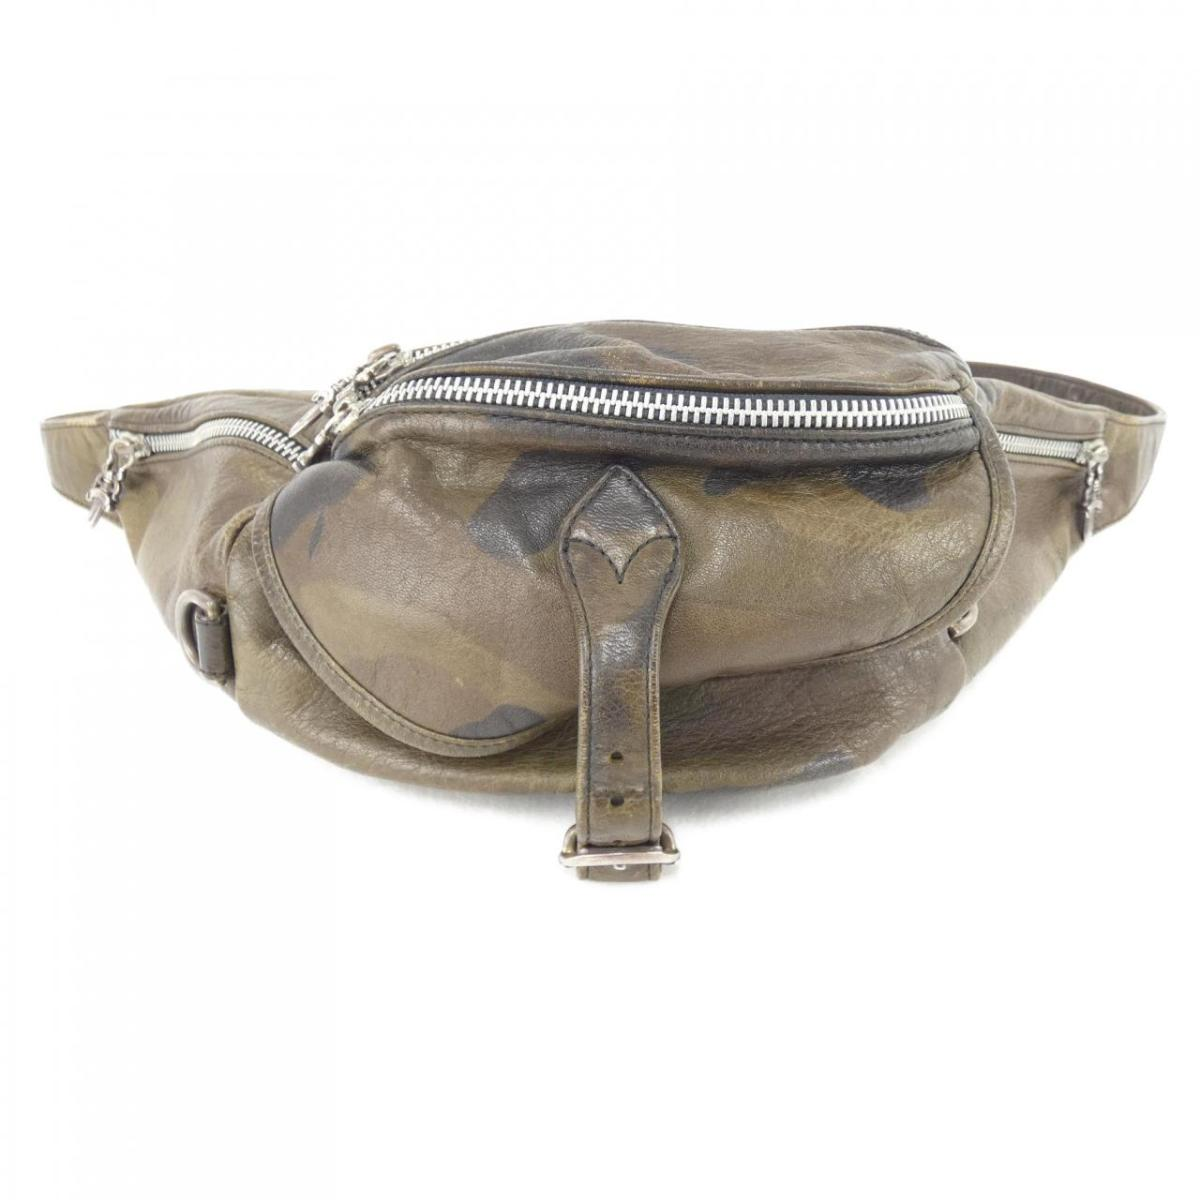 クロムハーツ CHROME HEARTS BAG 2232 304 7200 9100【中古】